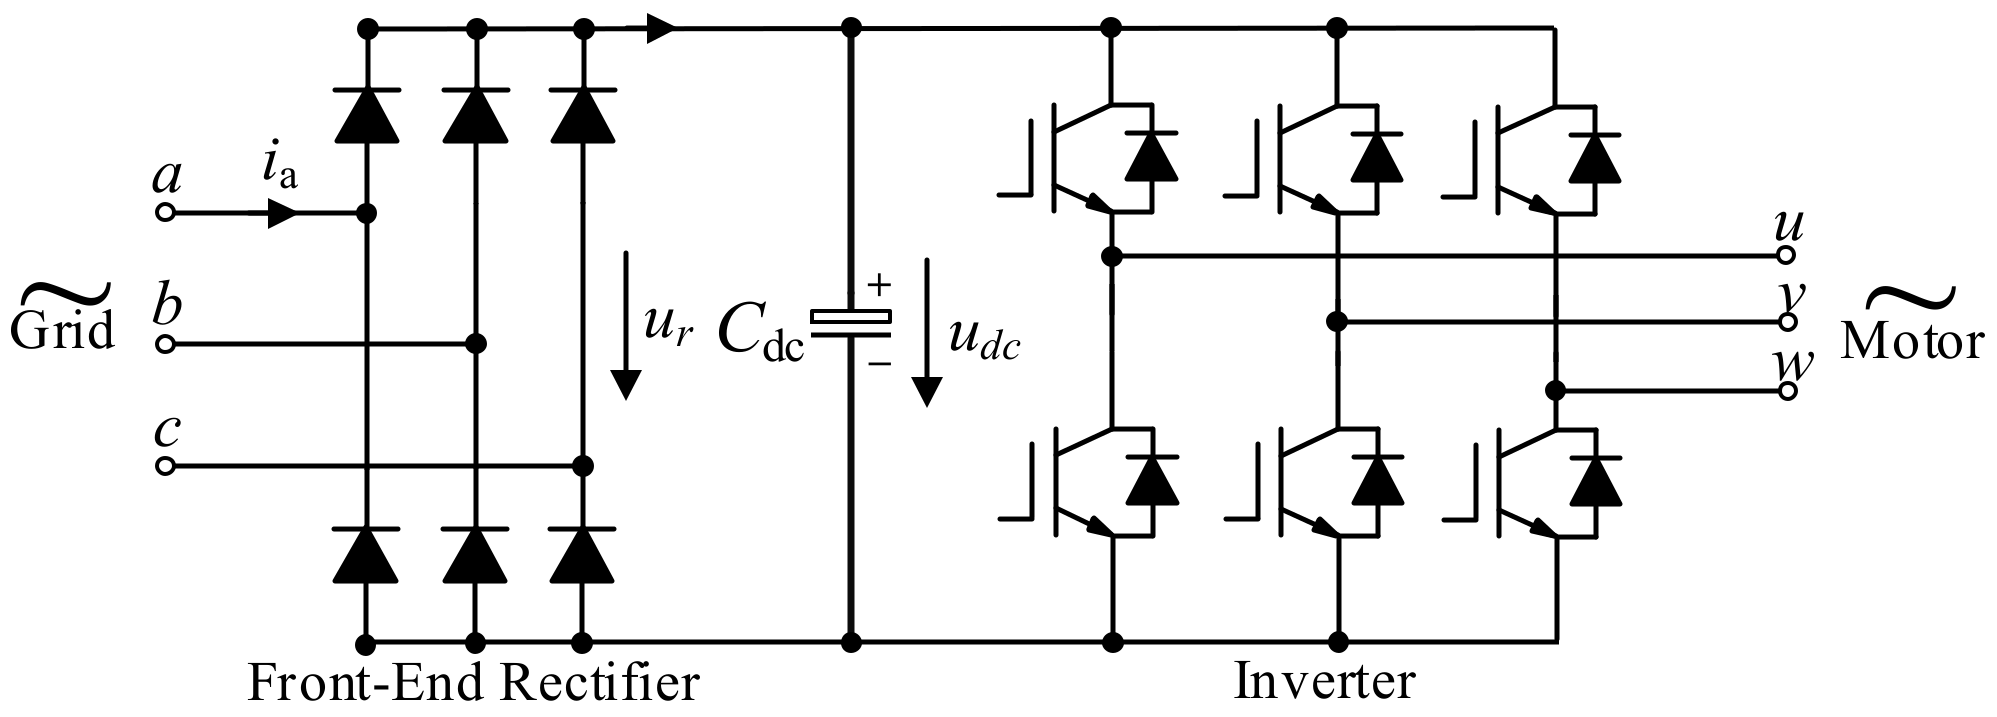 Diagram Additionally Single Phase Motor Wiring Diagrams In Addition Sd